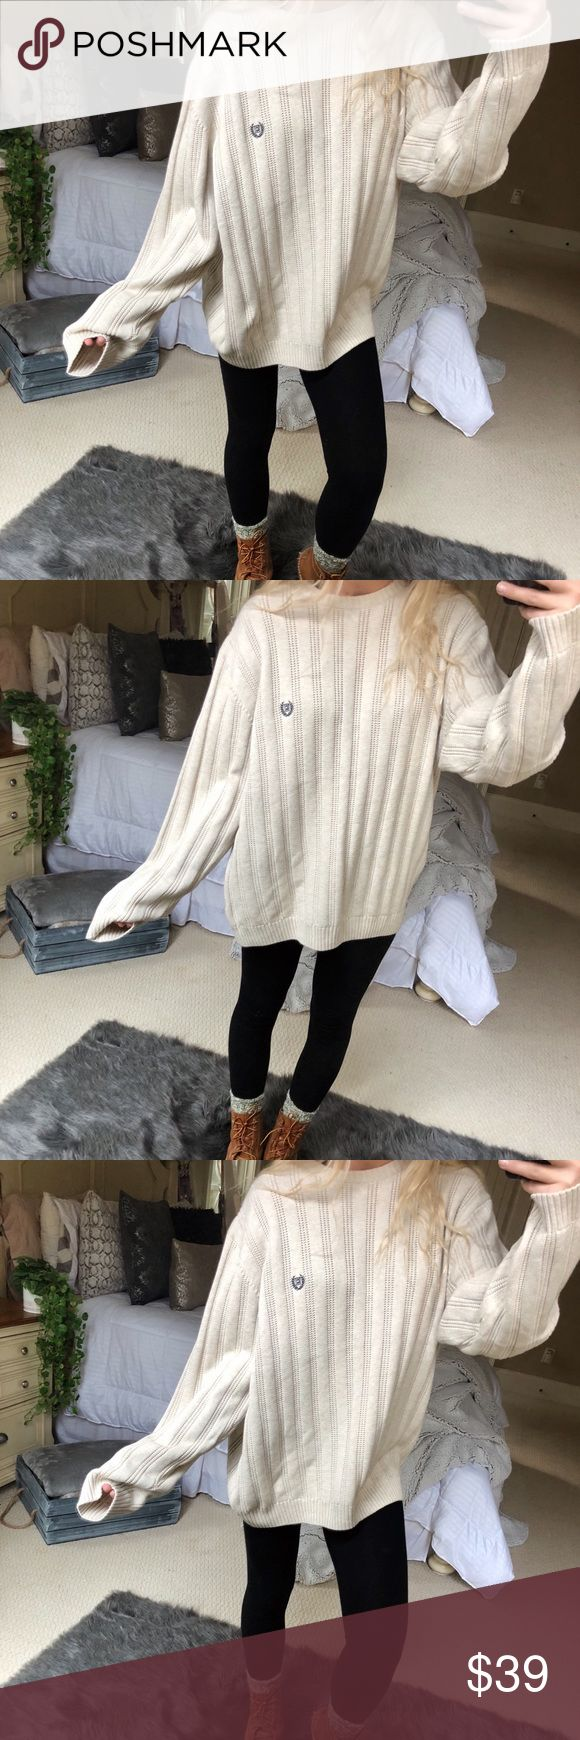 cream chunky knitted sweater beautiful chunky knitted cream chaps sweater. so cozy and high quality! fits a size medium or large ☕️✨🍂 — • all offers 100% welcomed + encouraged • bundle for a private discount of at least 20% off  • orders guaranteed to ship within 1-2 days unless stated otherwise • ask me any questions if you ever have any! xo Sweaters